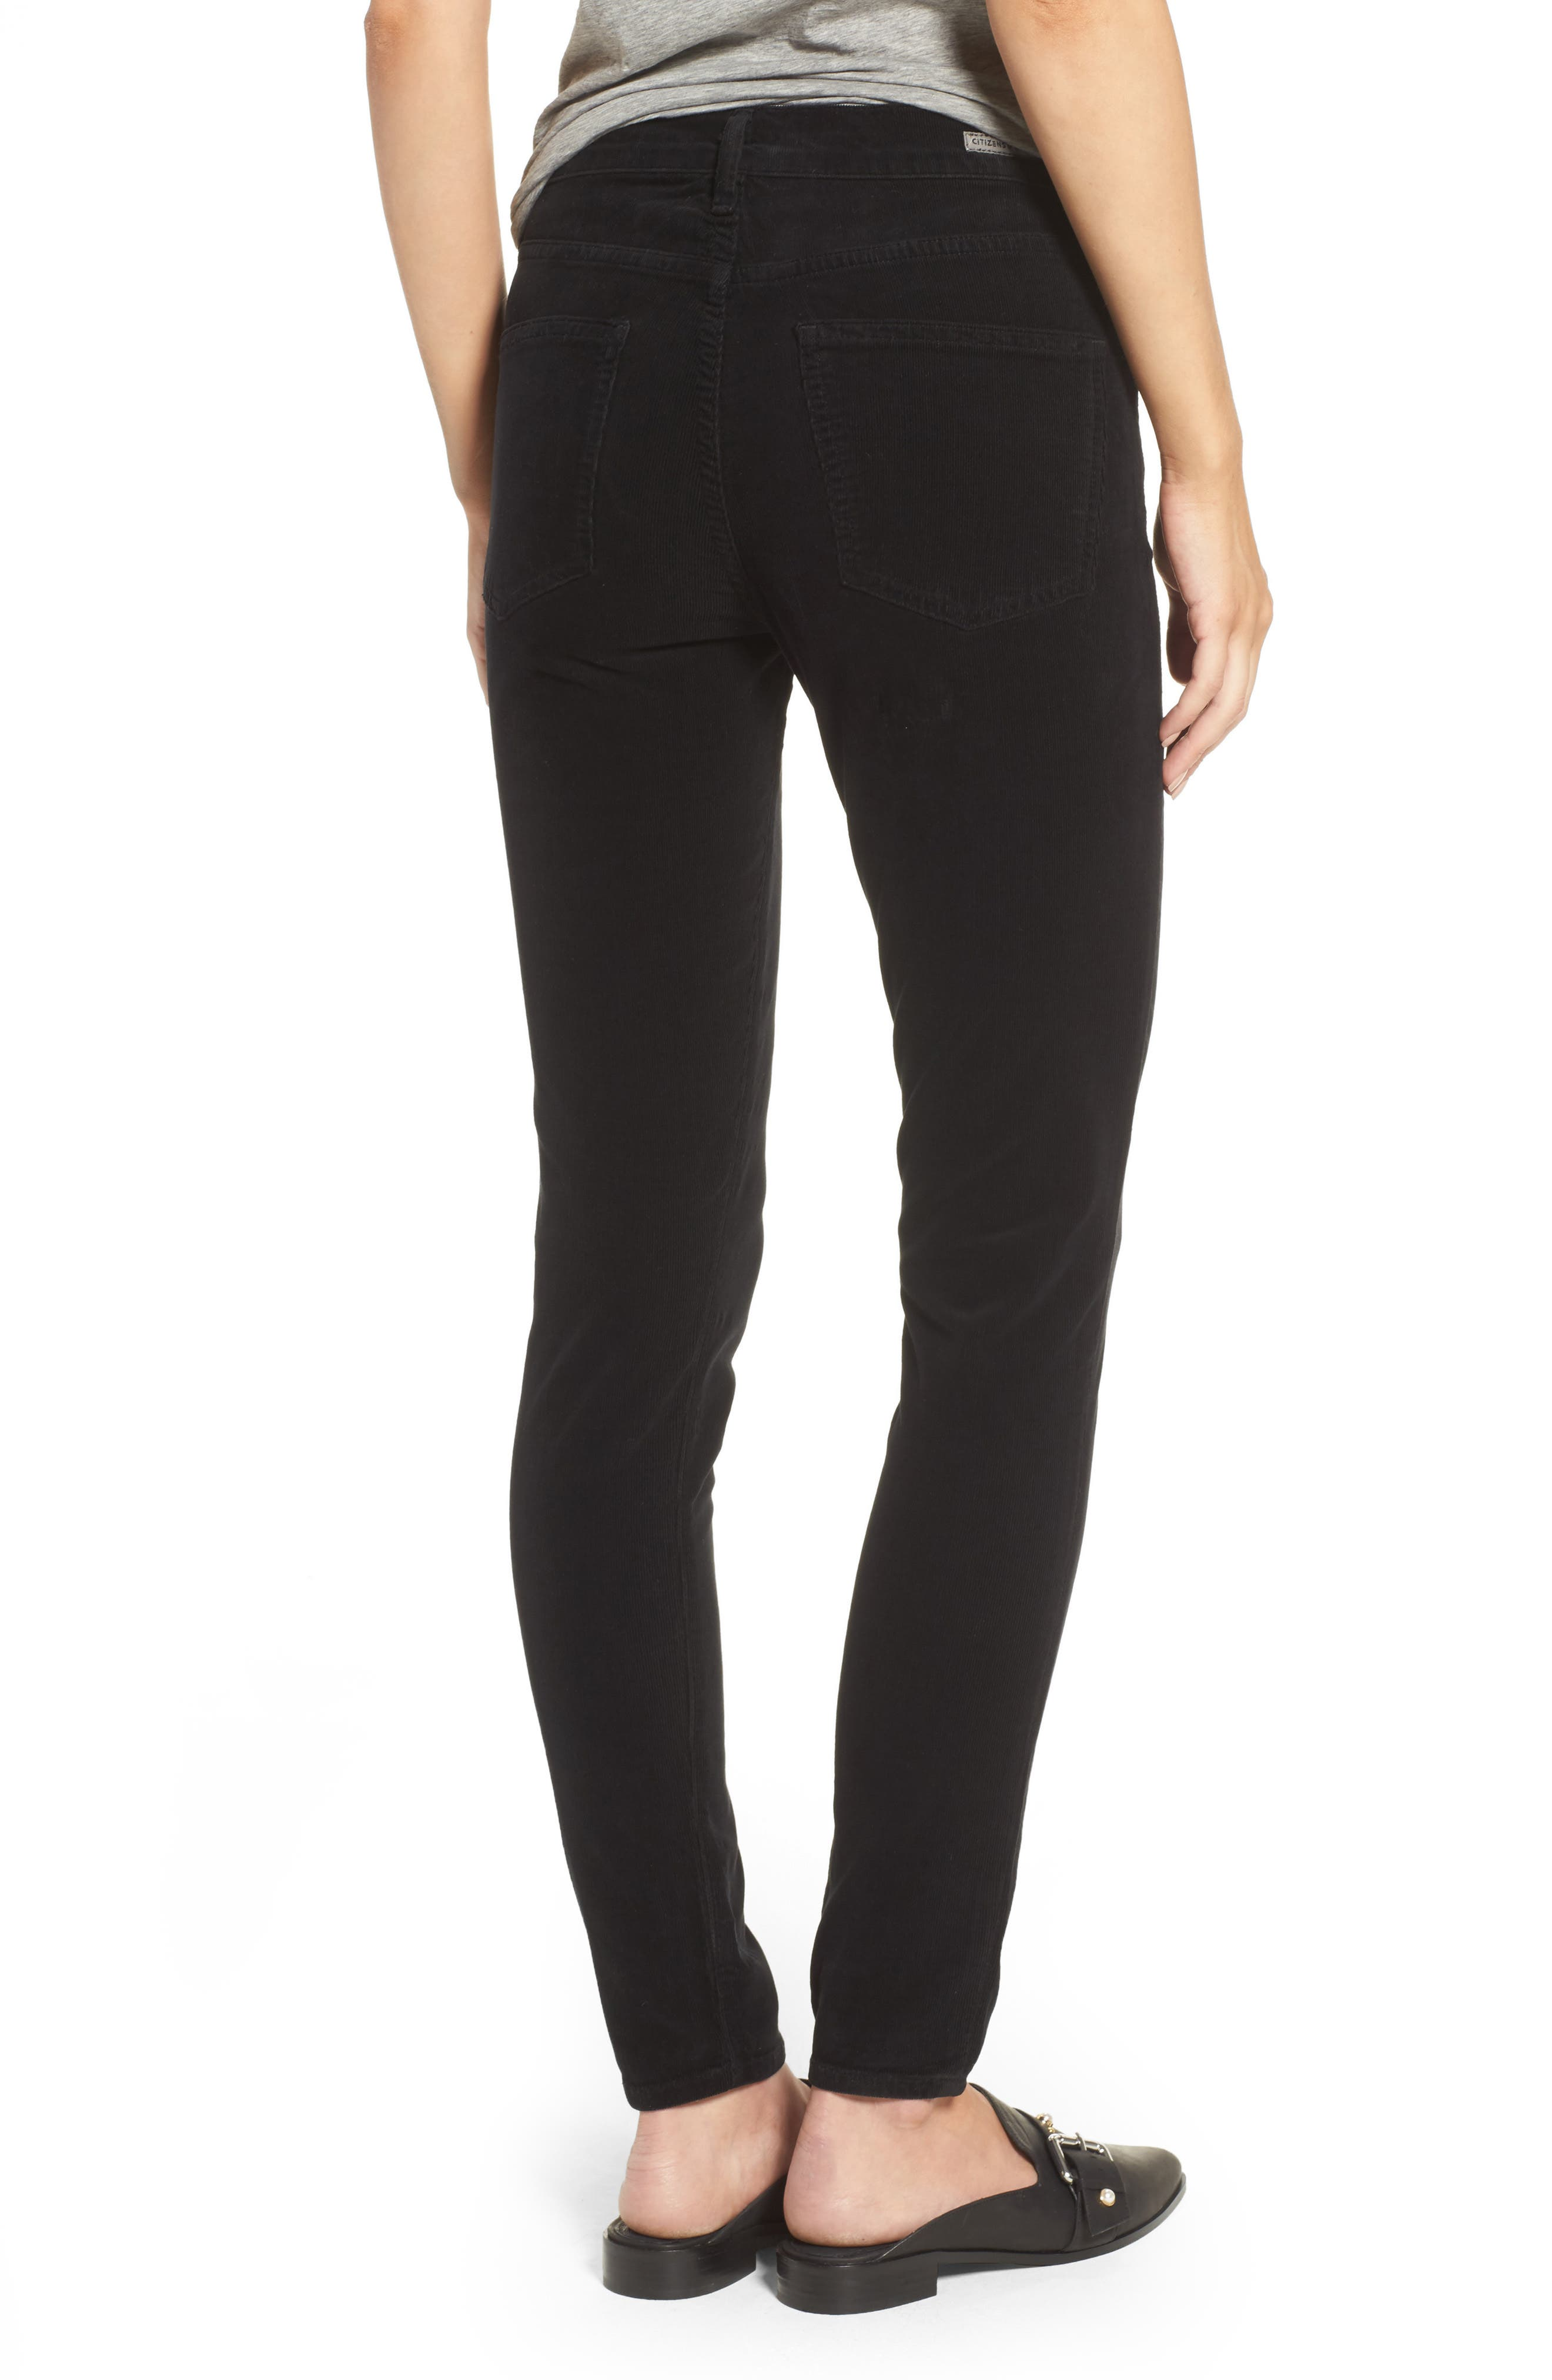 Rocket High Waist Skinny Corduroy Pants,                             Alternate thumbnail 2, color,                             Black Cord